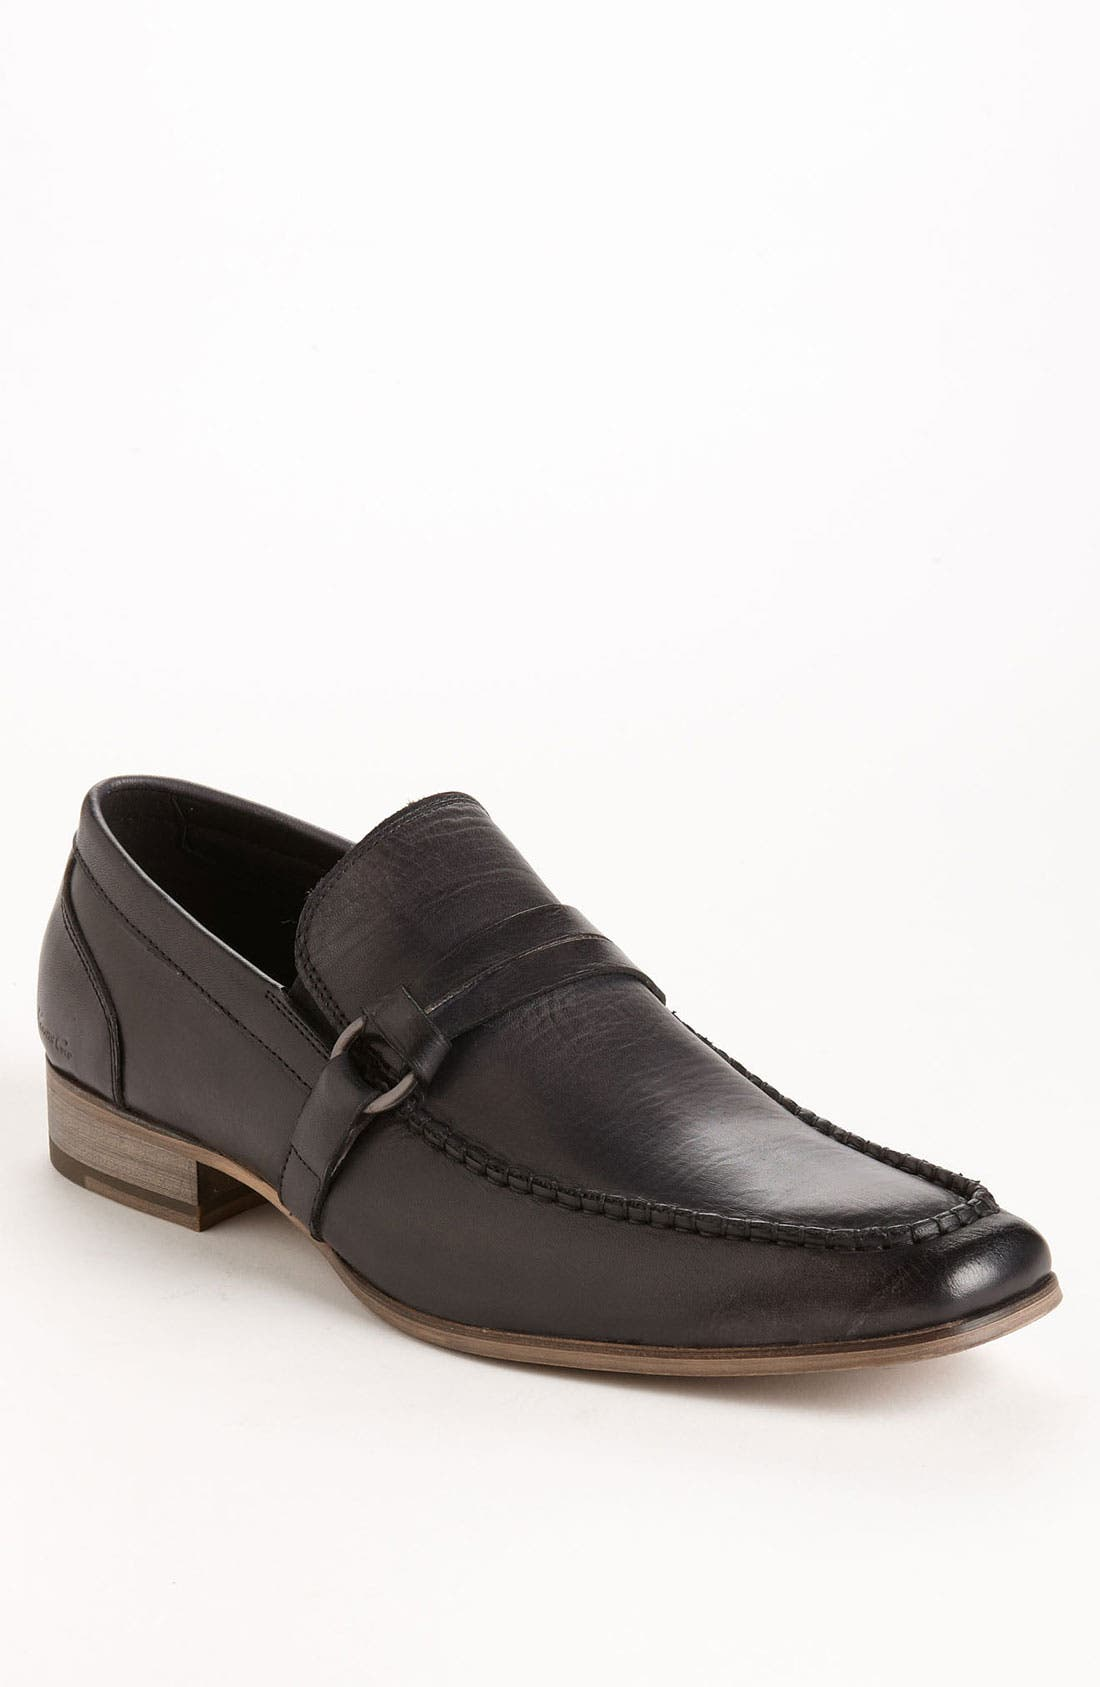 Main Image - Kenneth Cole New York 'Big Leather' Loafer